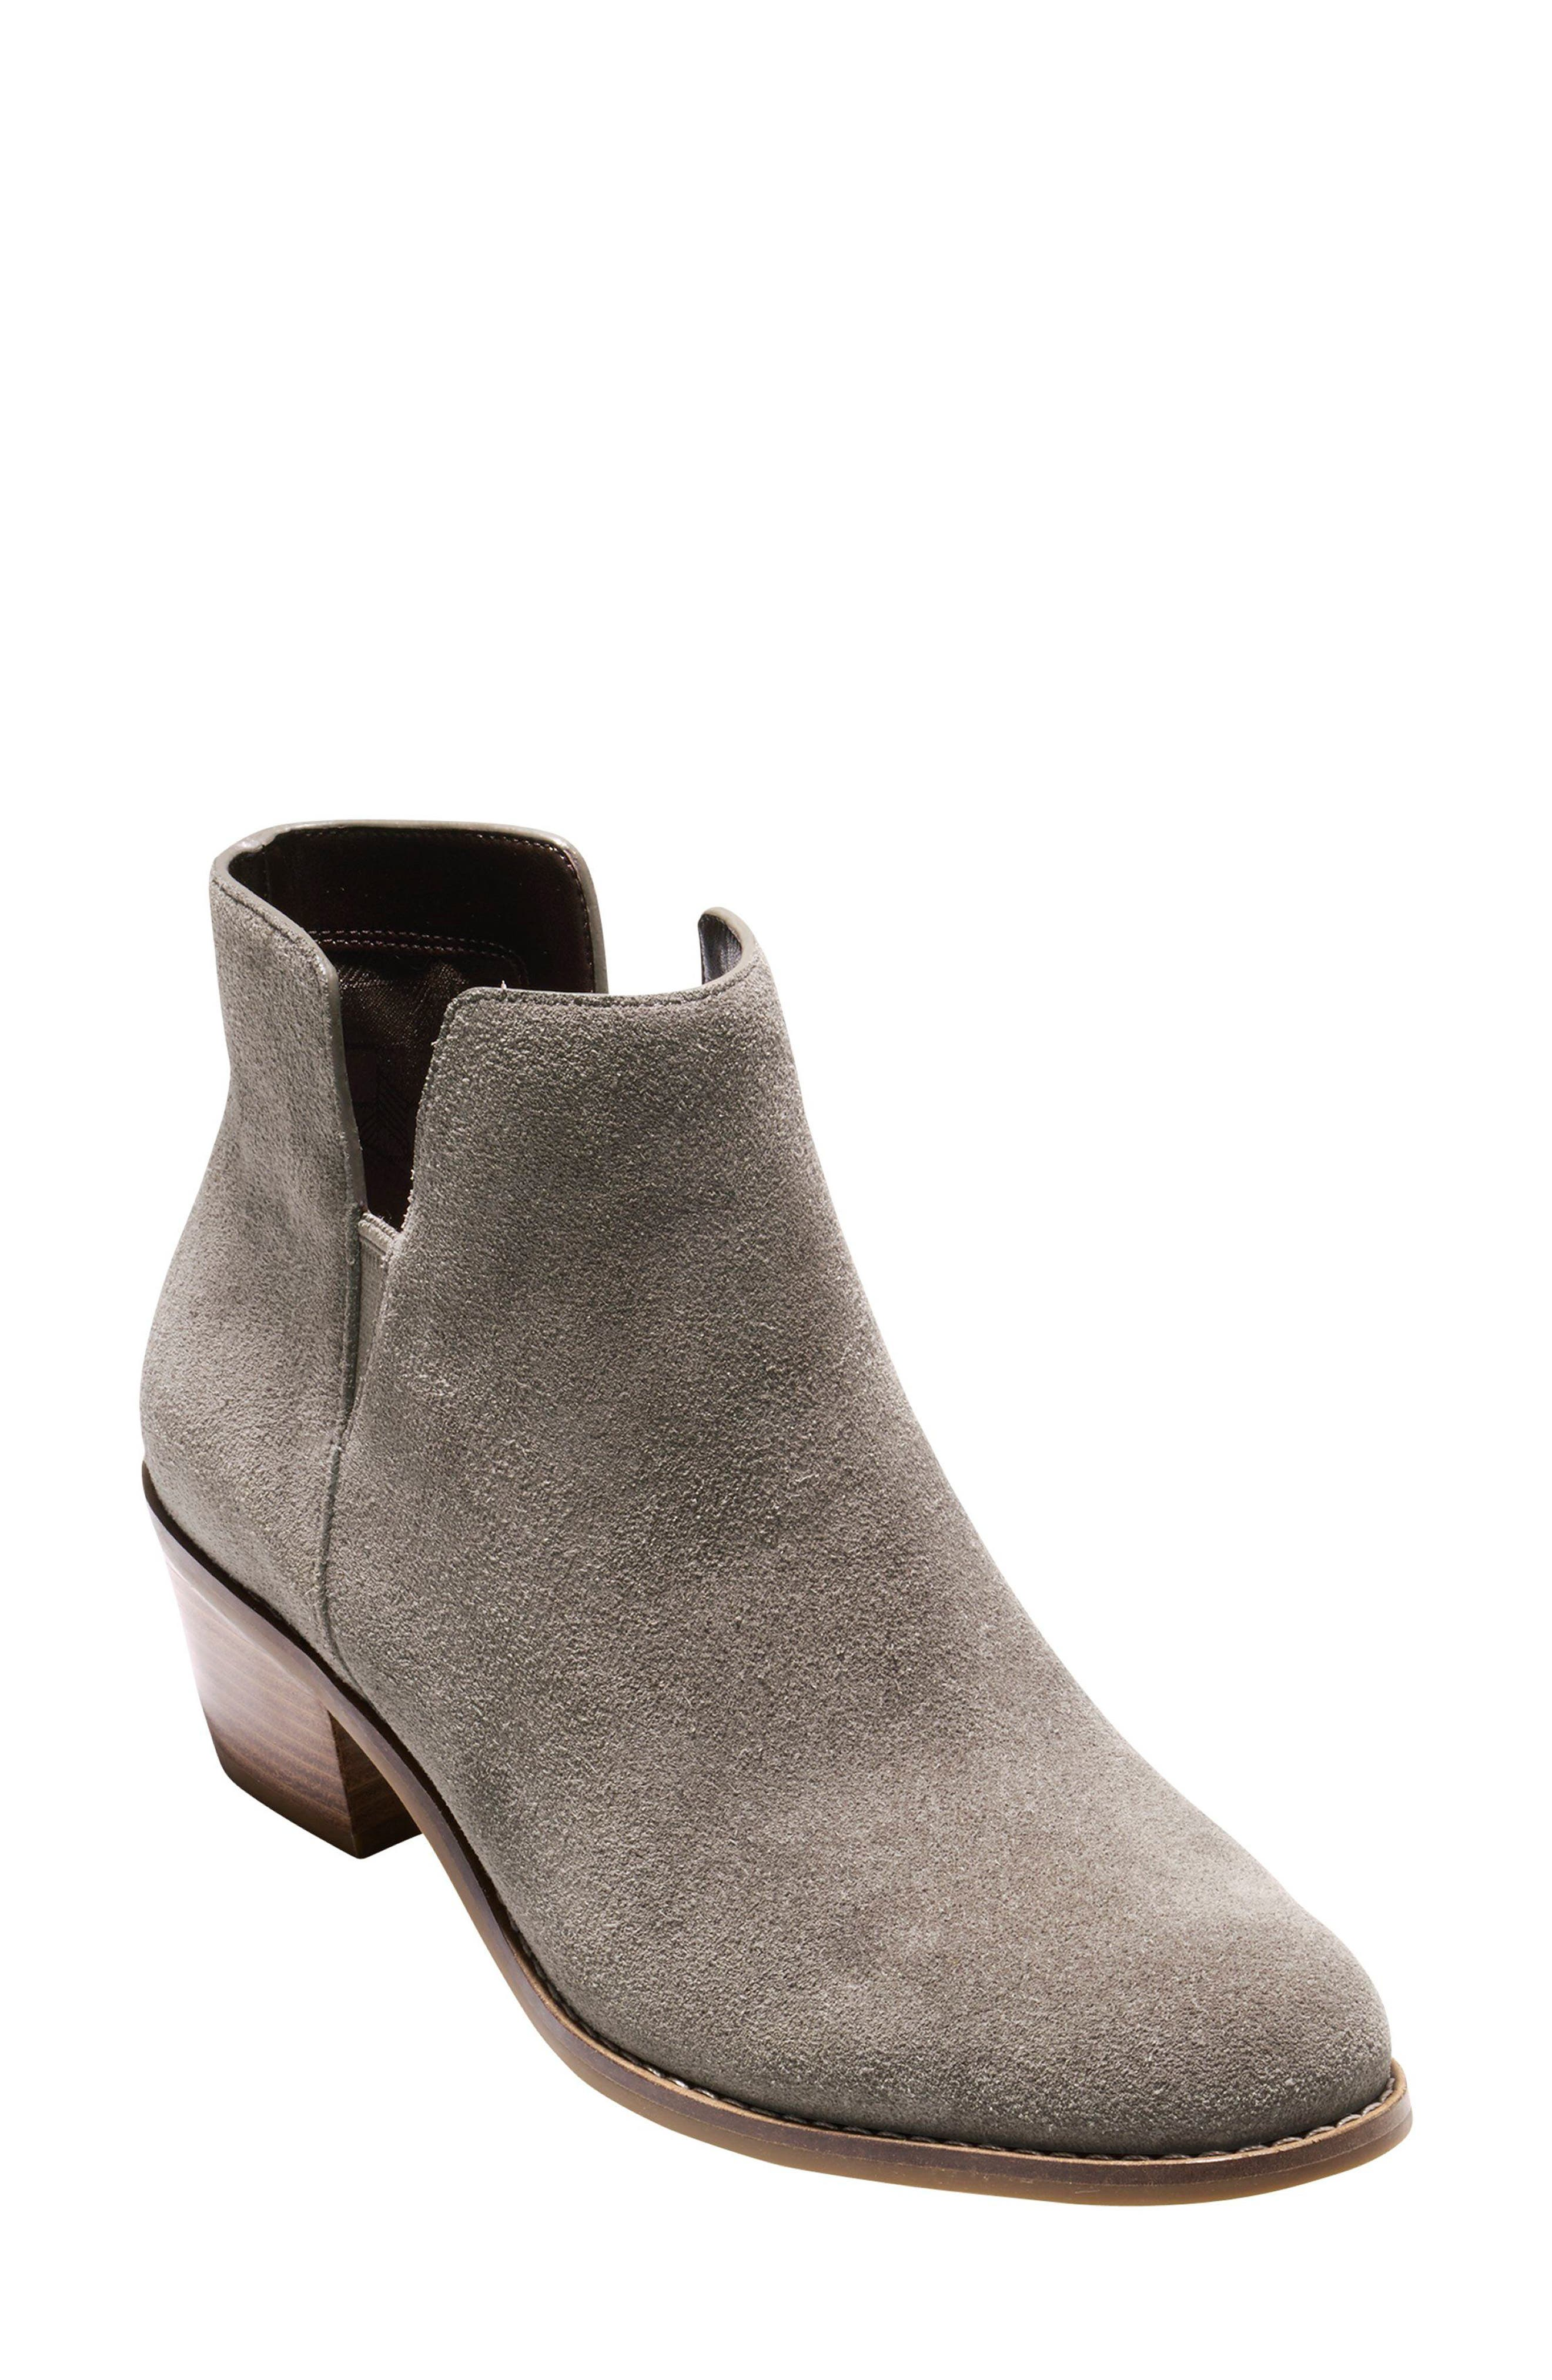 'Abbot' Chelsea Boot,                             Main thumbnail 1, color,                             Morel Suede